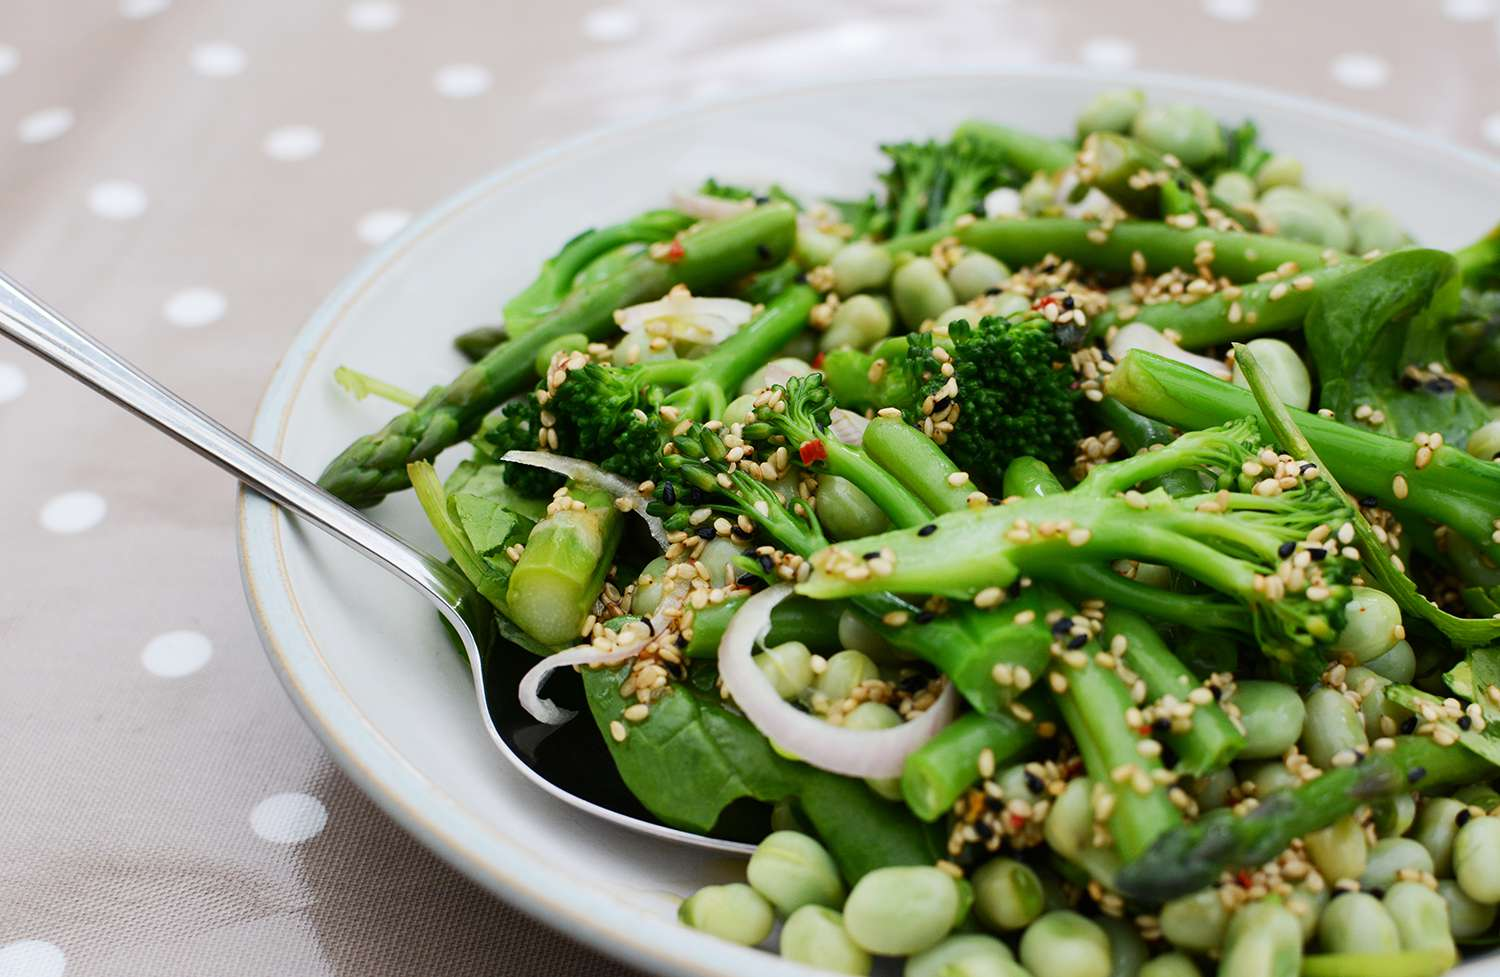 Serving spoon in a spring salad of broccolini and beans